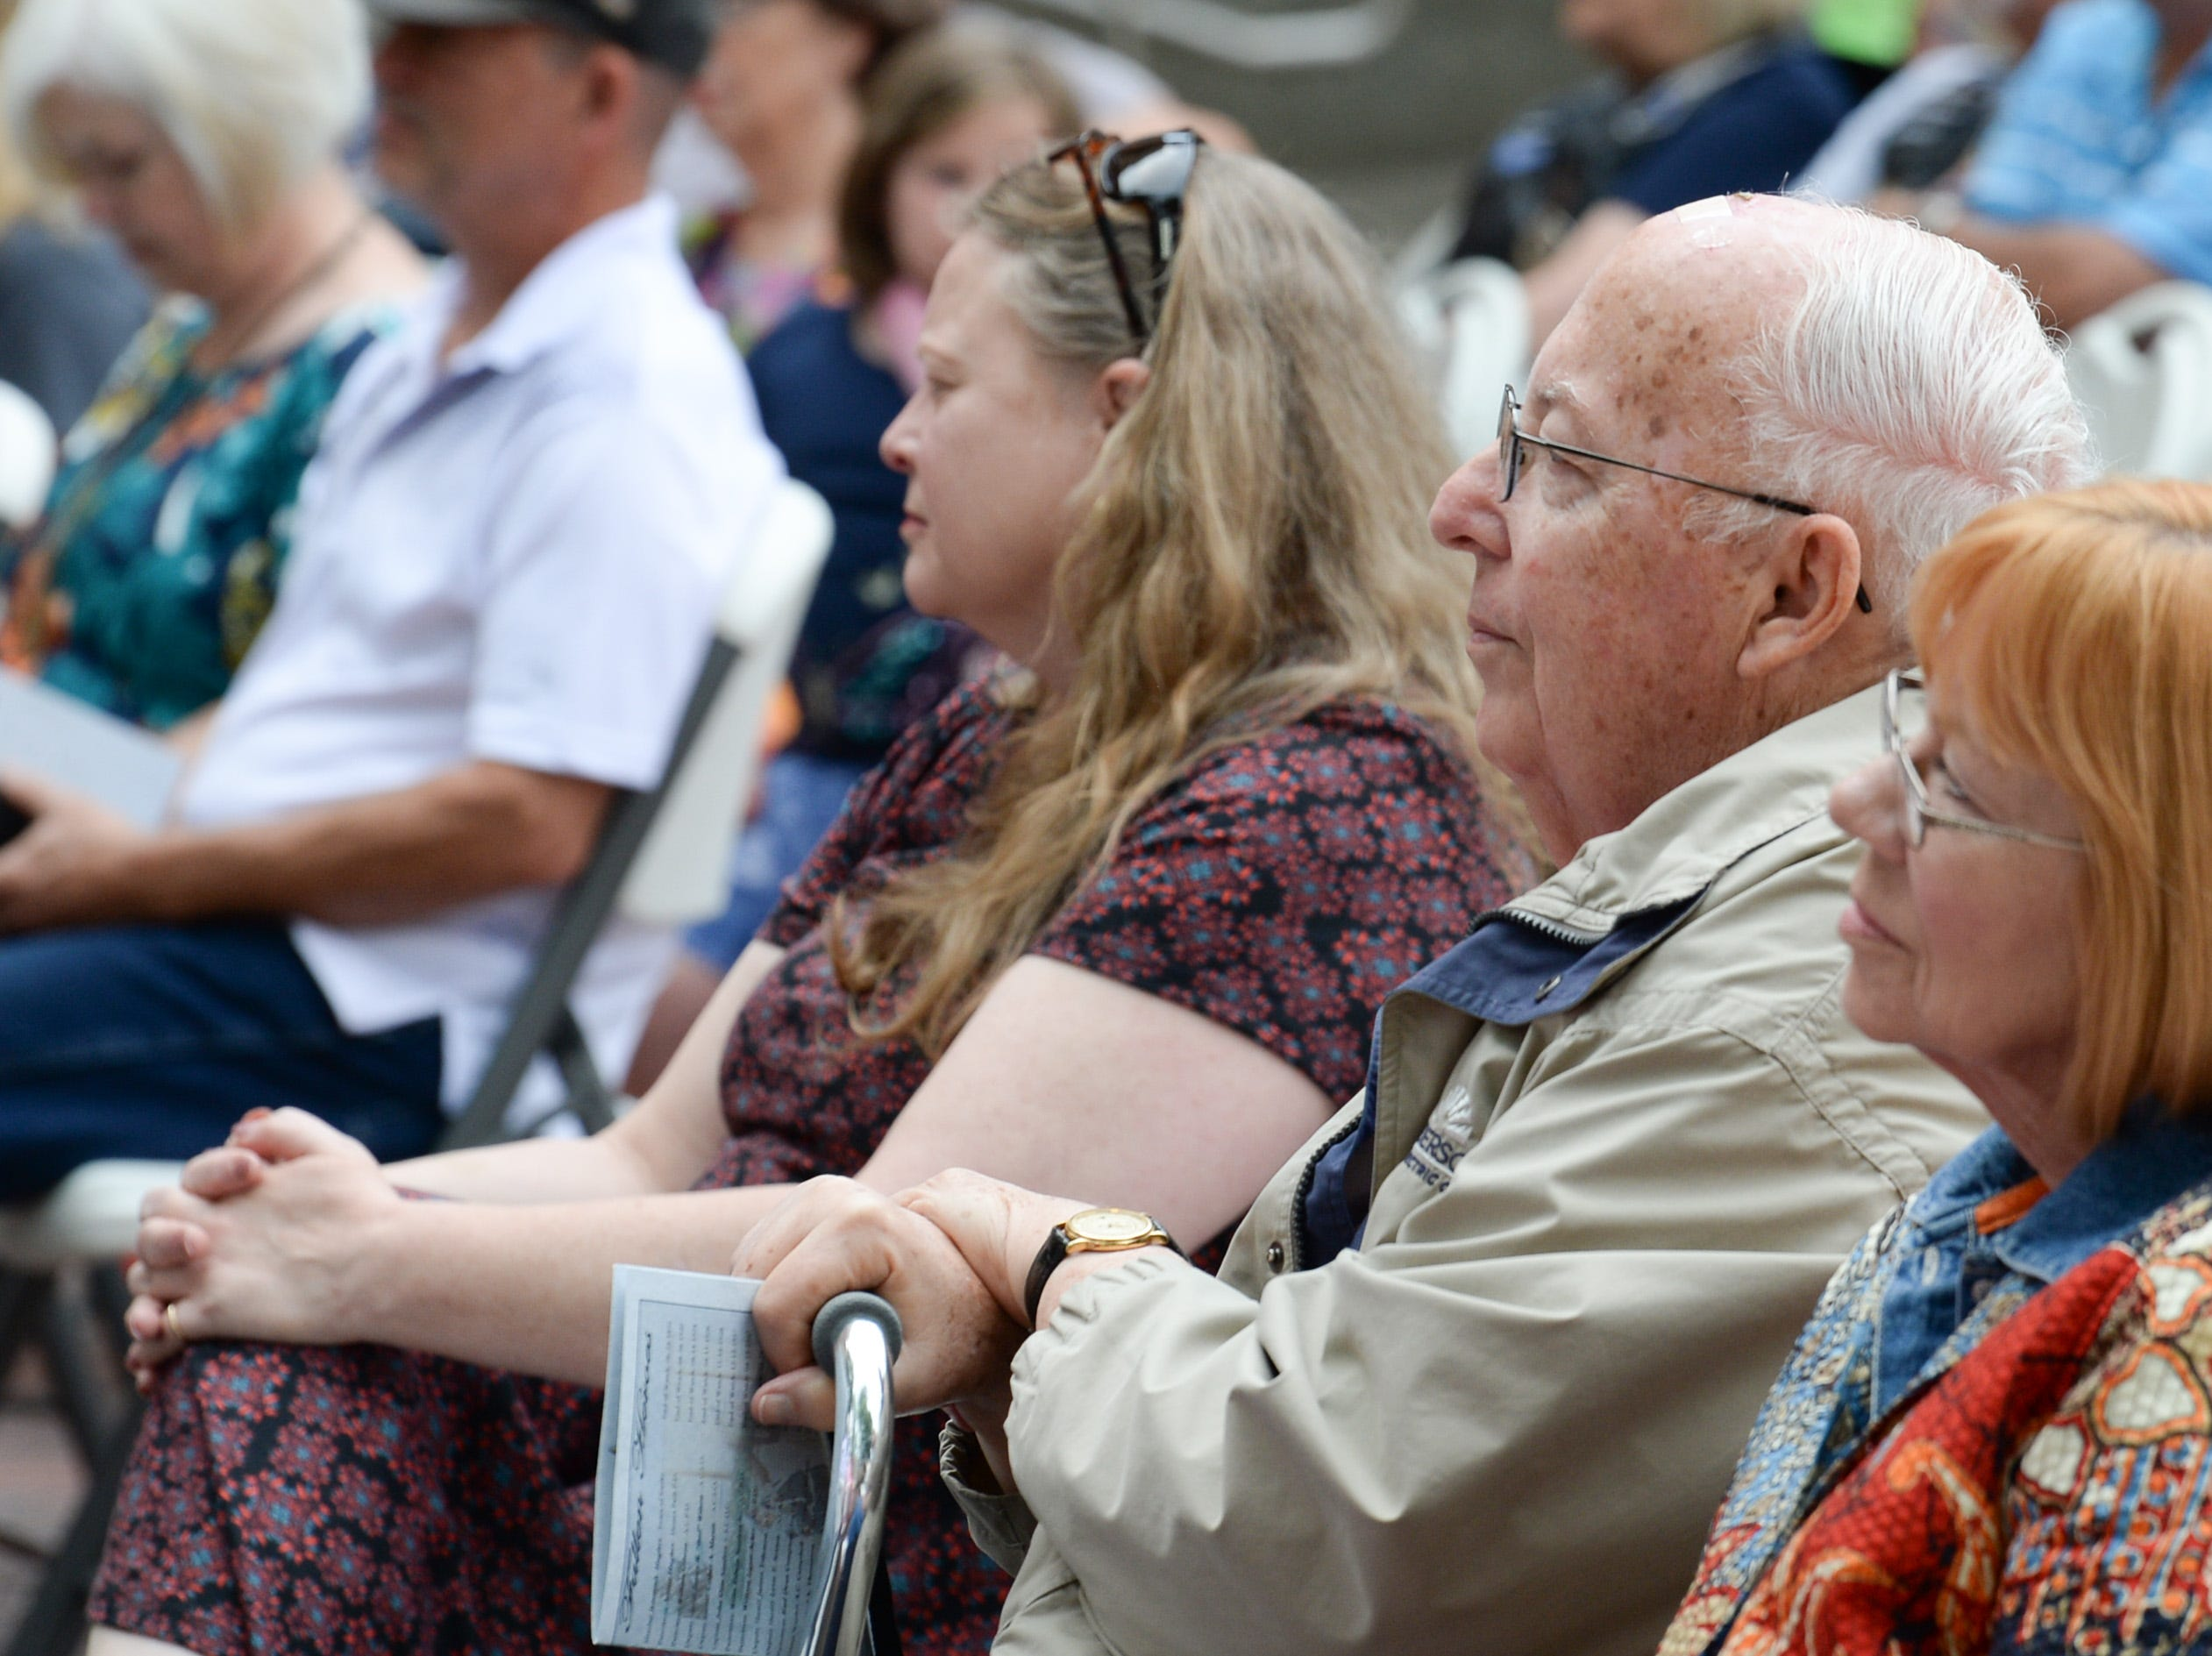 Retired city Judge Ken Mattison listens to keynote speaker Jackie Swindler, Director of the State Criminal Justice Academy, speaking during the 2019 Peace Officer Memorial Service Wednesday May 15, 2019. People attended to help honor the lives of officers lost in the line of duty.